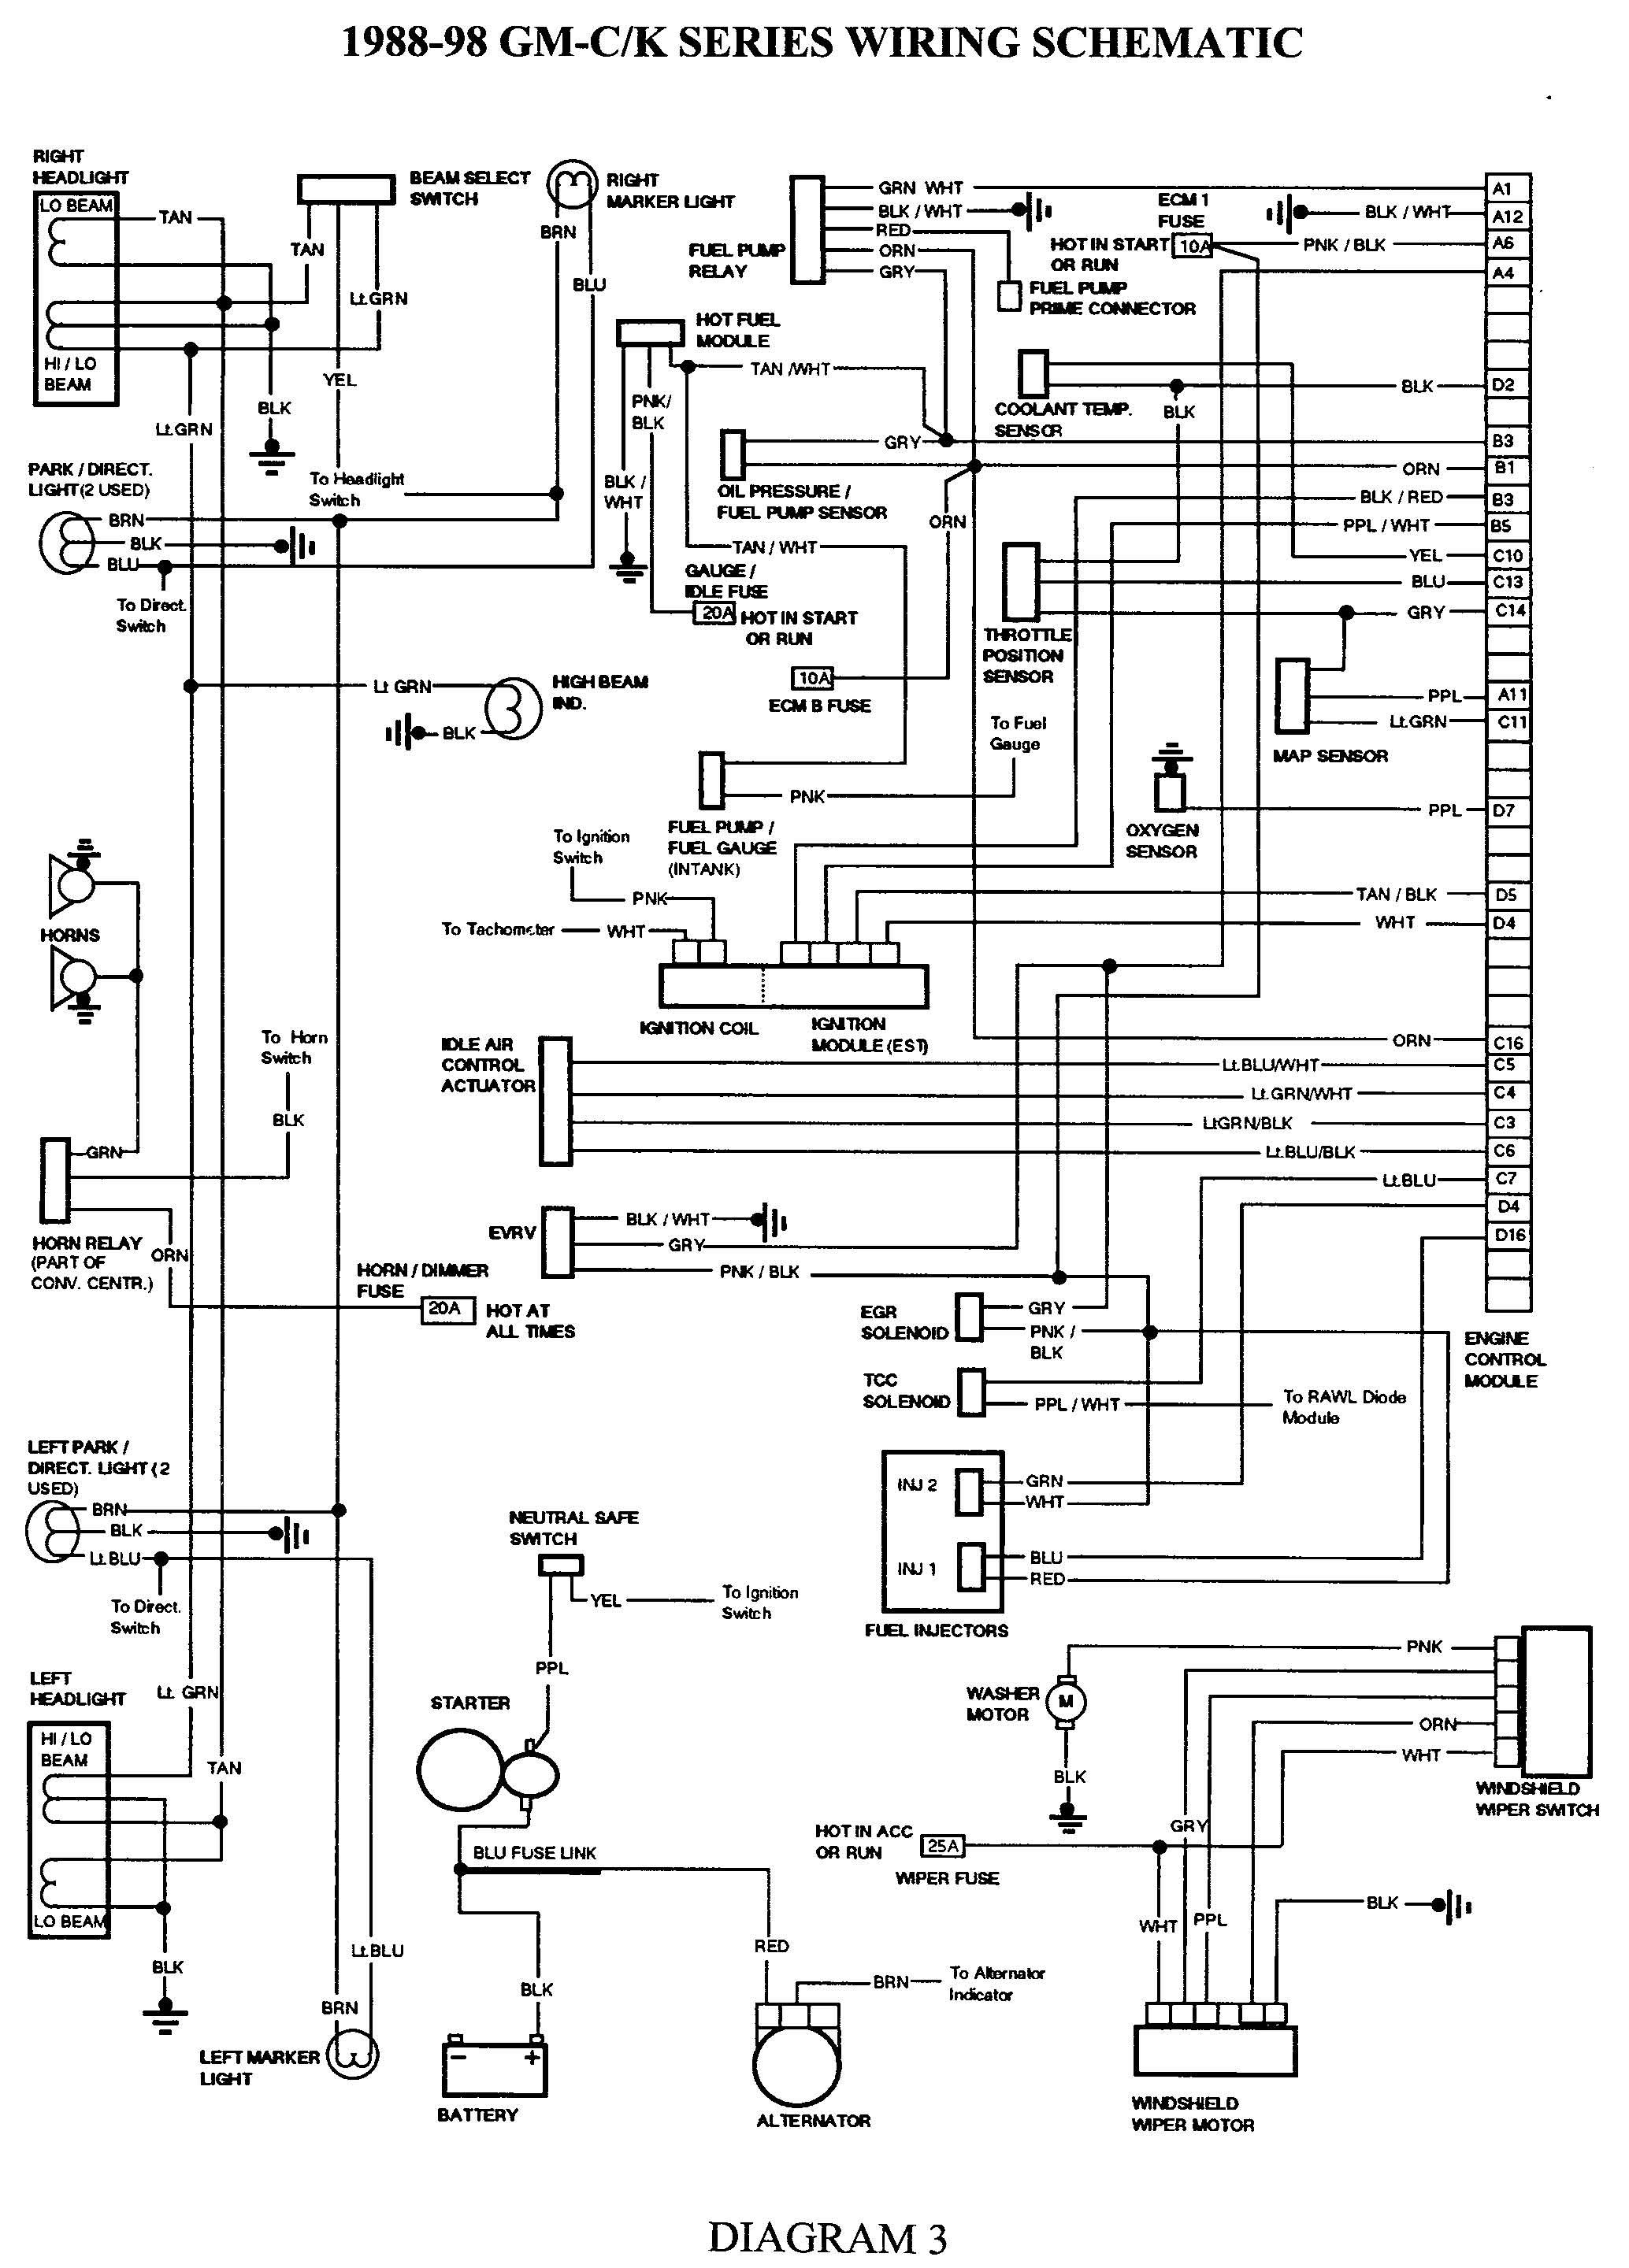 medium resolution of gmc truck wiring diagrams on gm wiring harness diagram 88 98 kc diagram they had different wires after 1988 here is the gauge wires